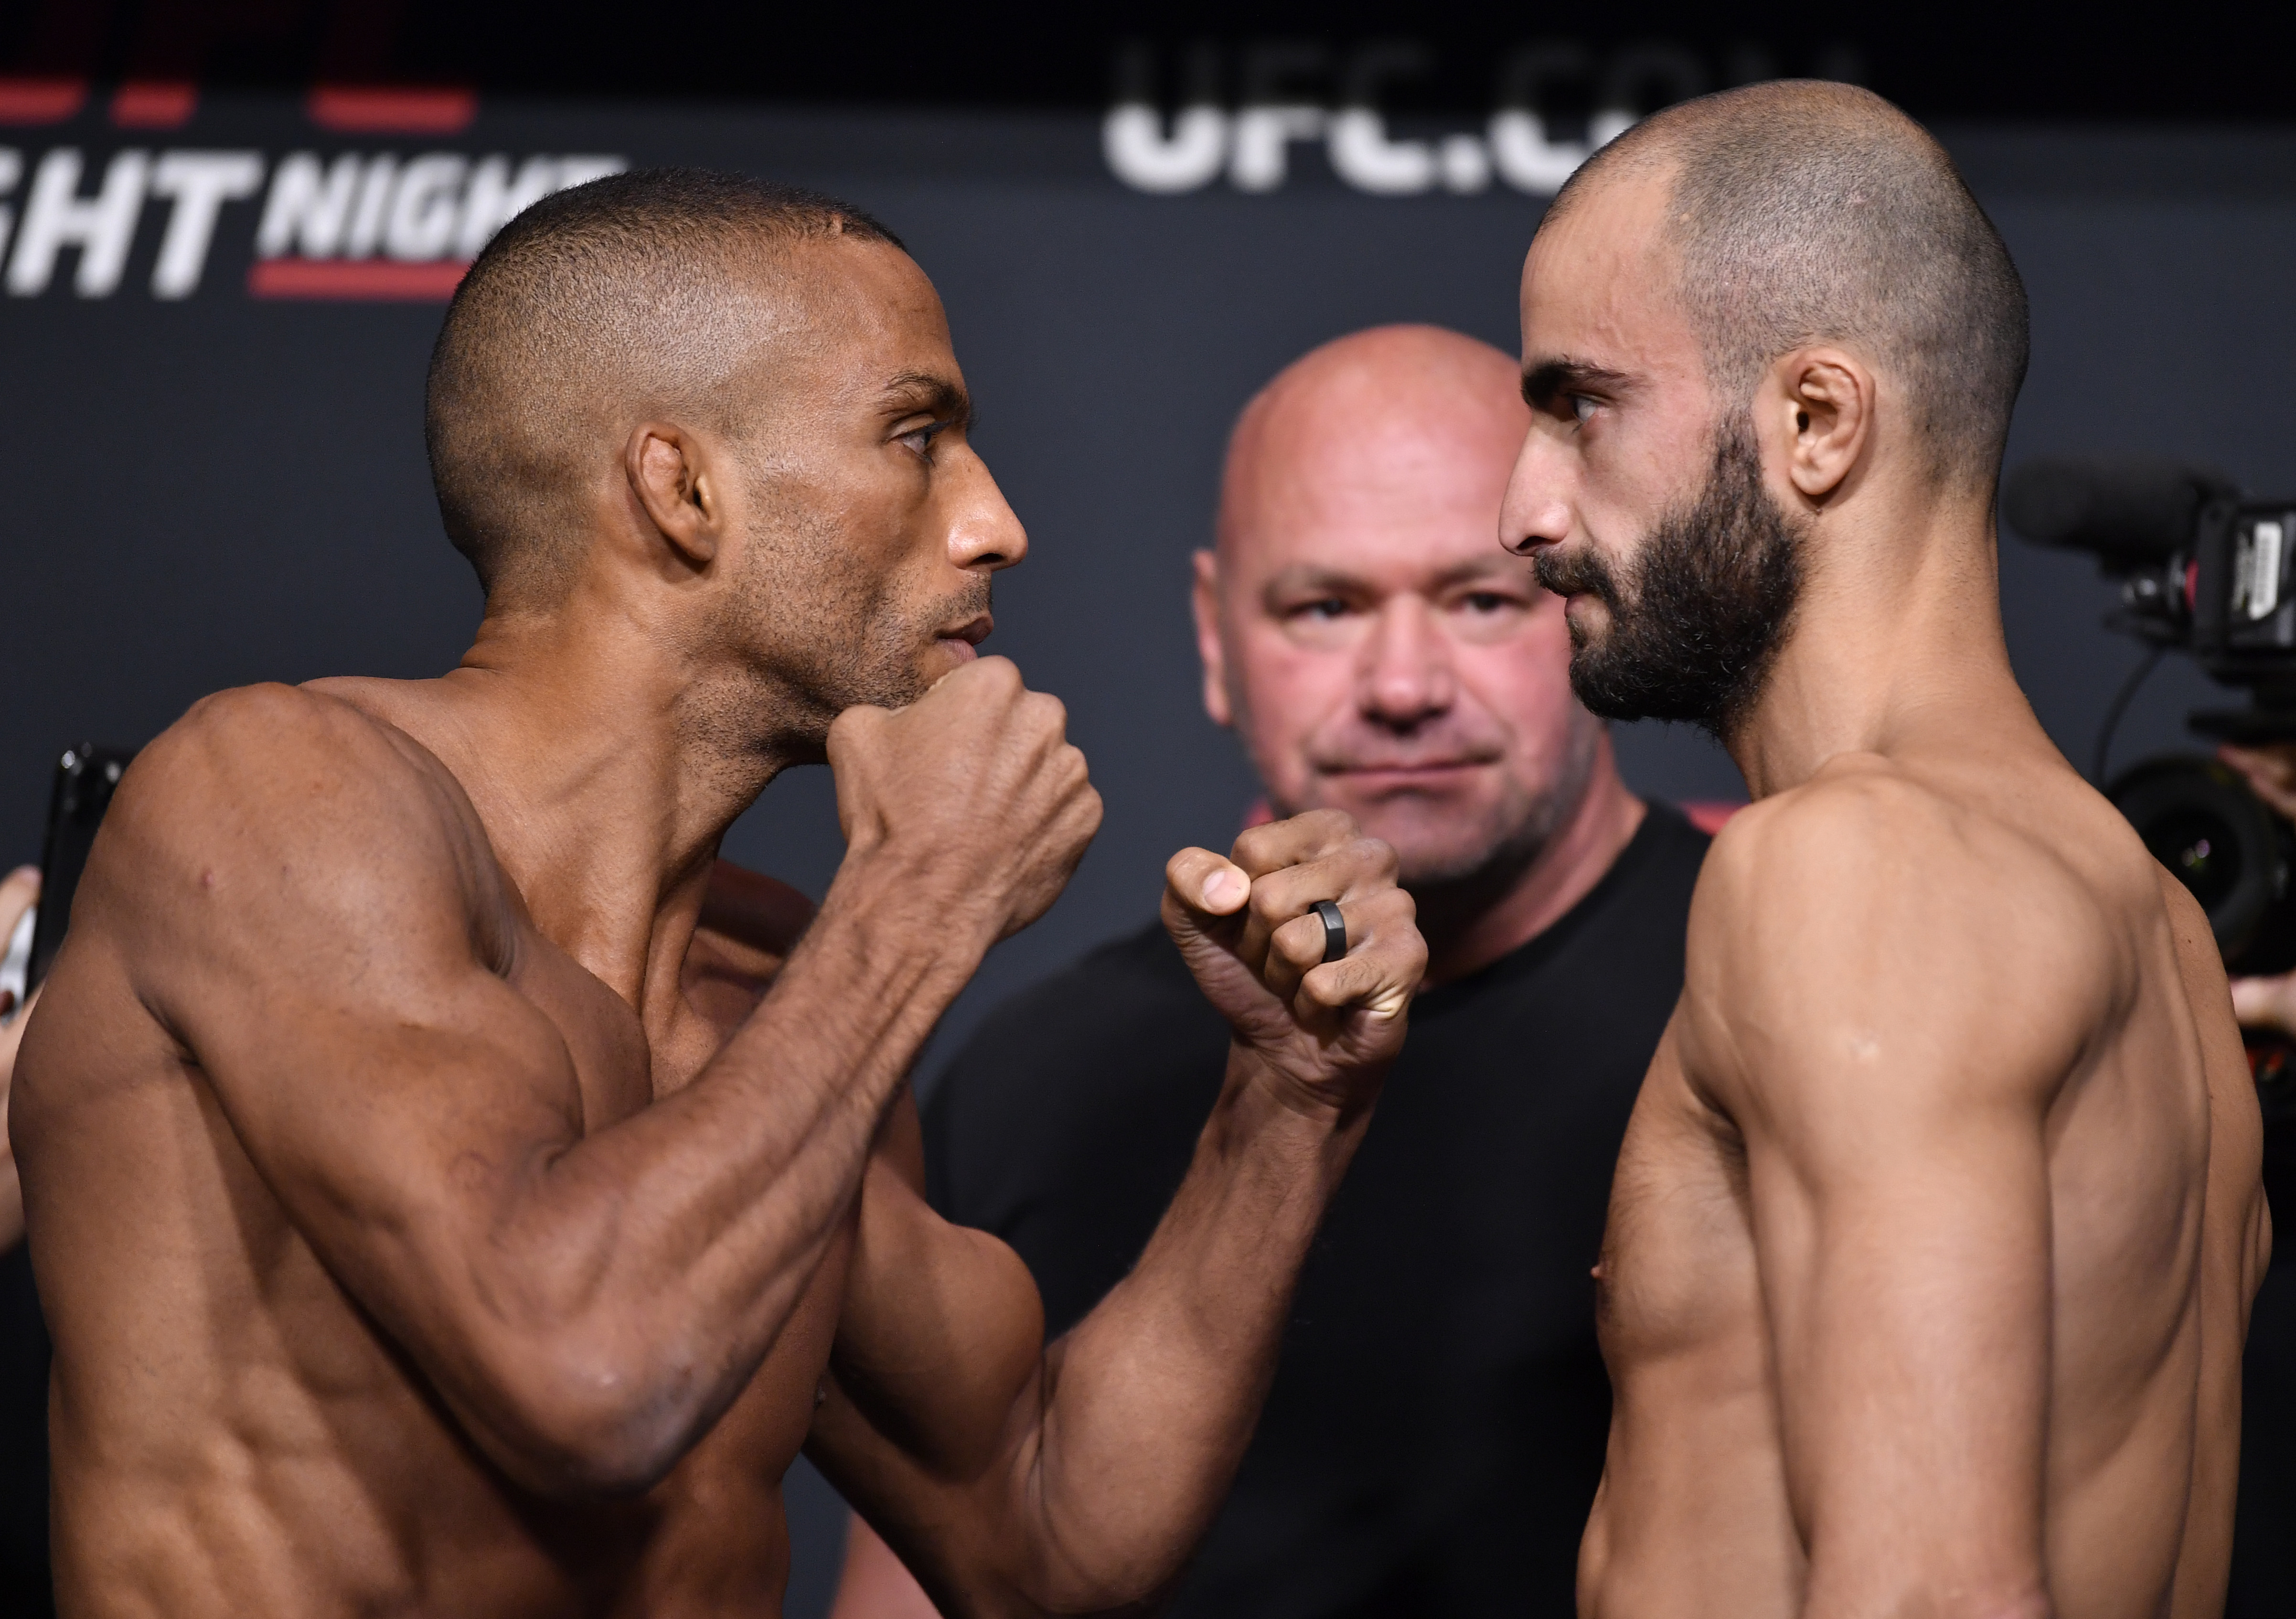 (L-R) Opponents Edson Barboza of Brazil and Giga Chikadze of Georgia face off during the UFC Fight Night weigh-in at UFC APEX on August 27, 2021 in Las Vegas, Nevada.